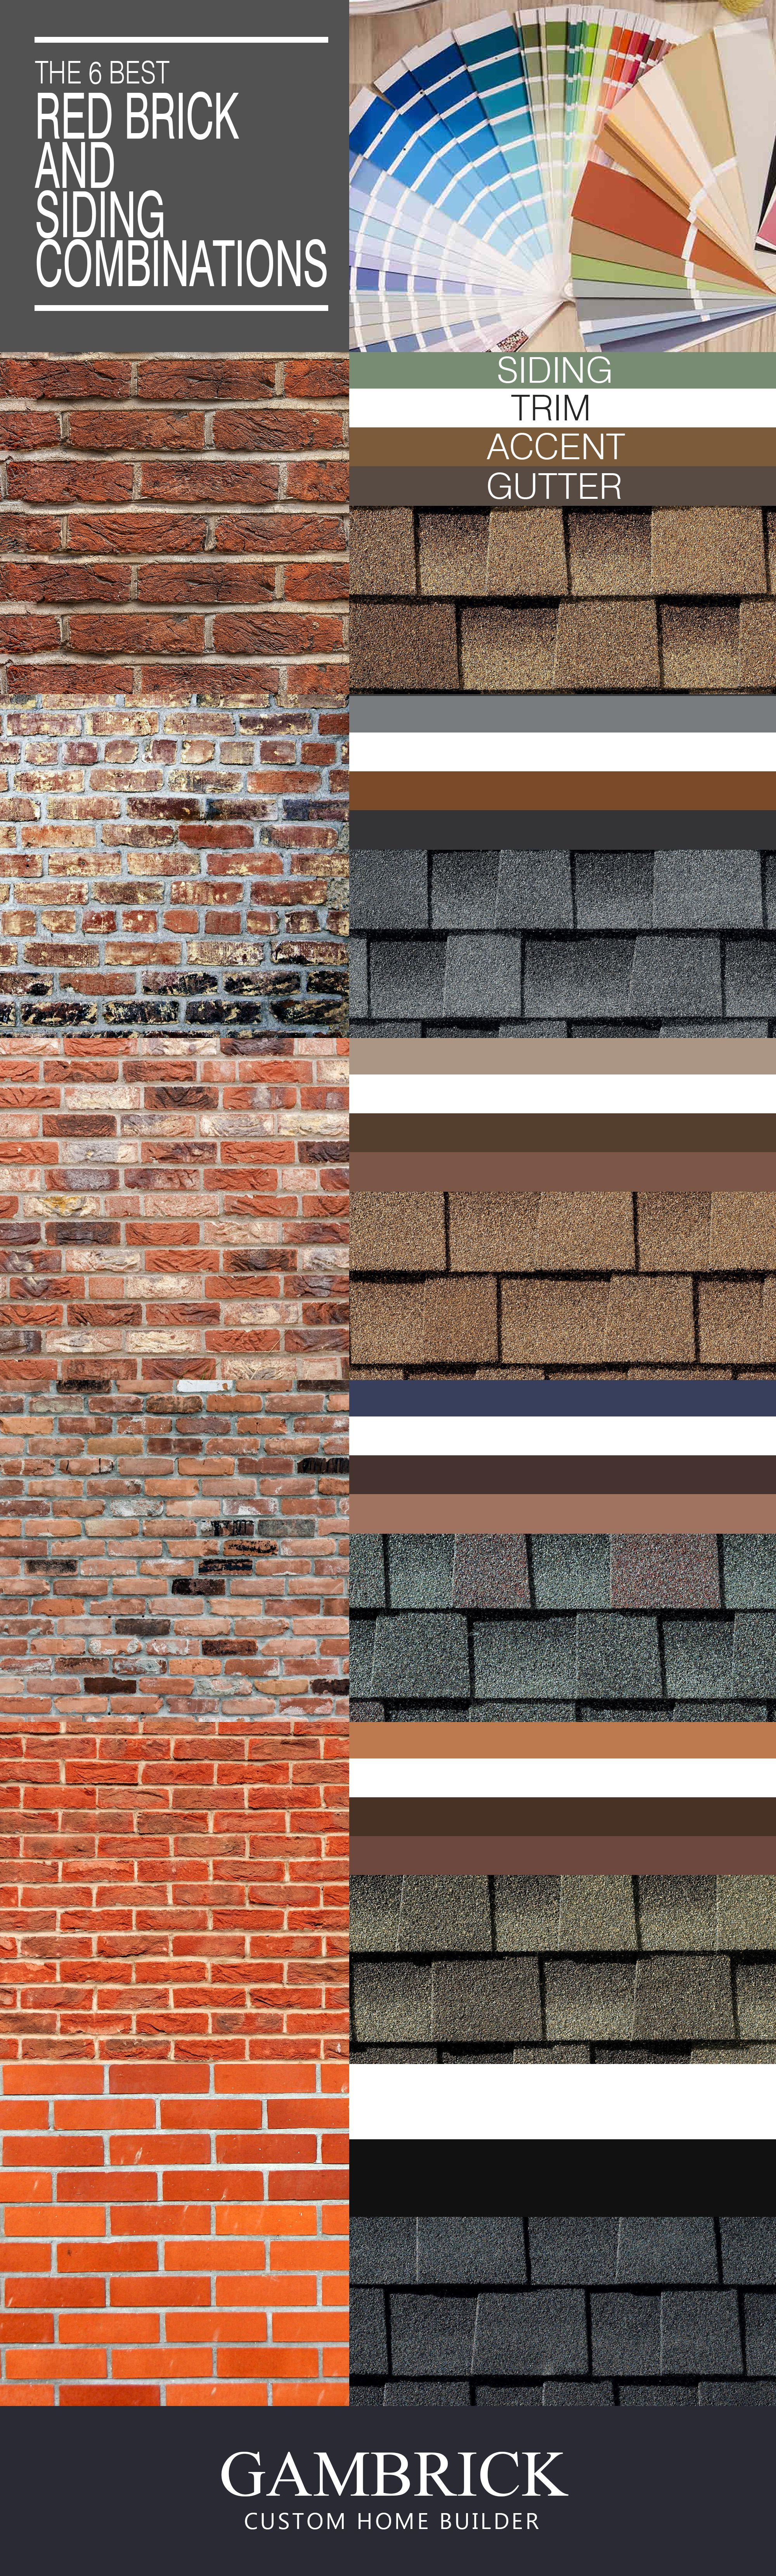 Best Red Brick Siding Color Combinations Brick House Exterior Colors Red Brick Exteriors Red Brick House Exterior